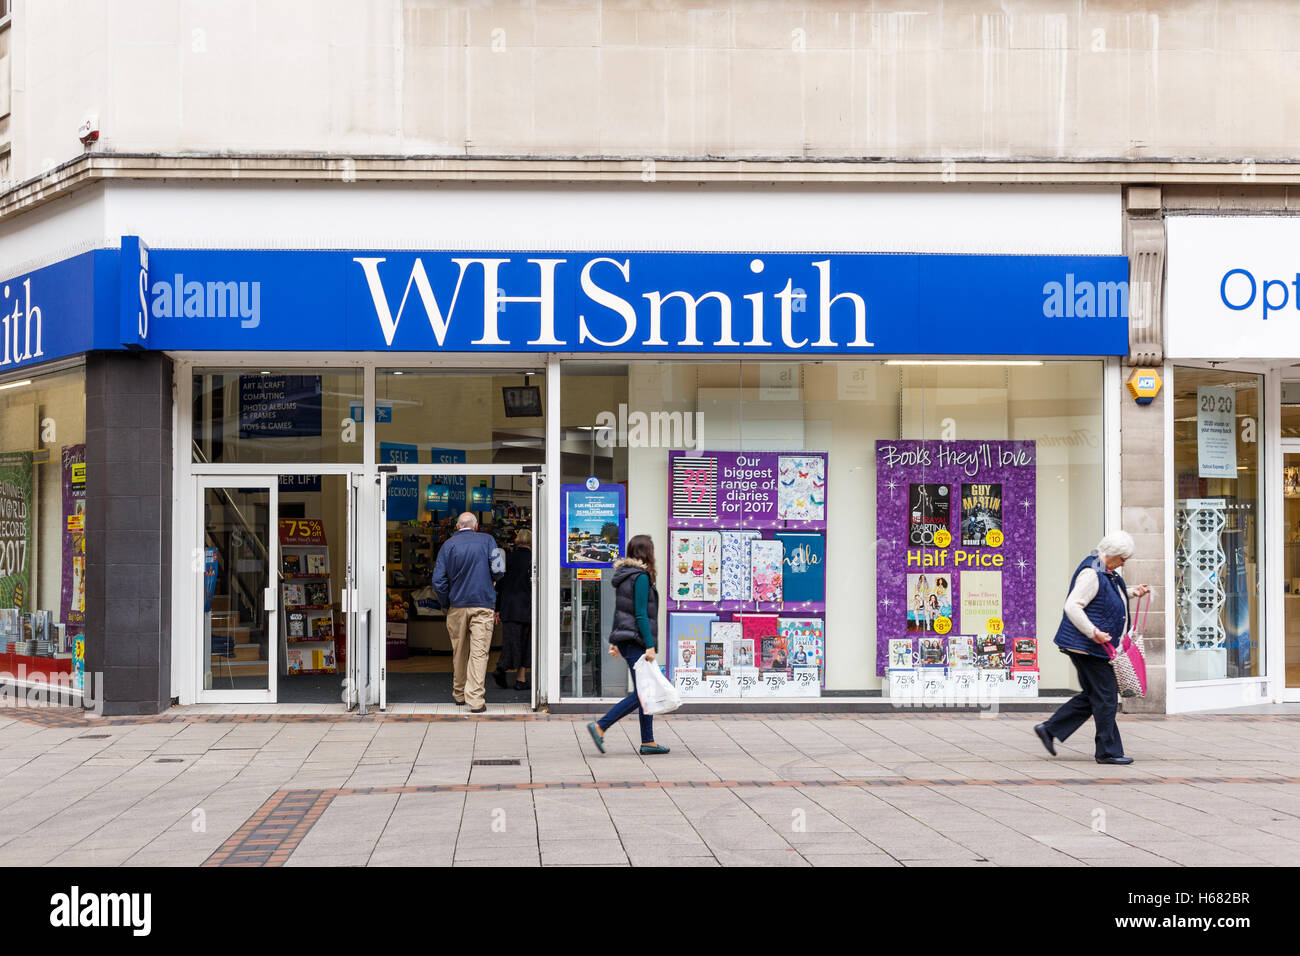 NOTTINGHAM, ENGLAND - OCTOBER 22: Frontage of the WH Smith store. On Listergate, Nottingham, England. On 22nd October - Stock Image